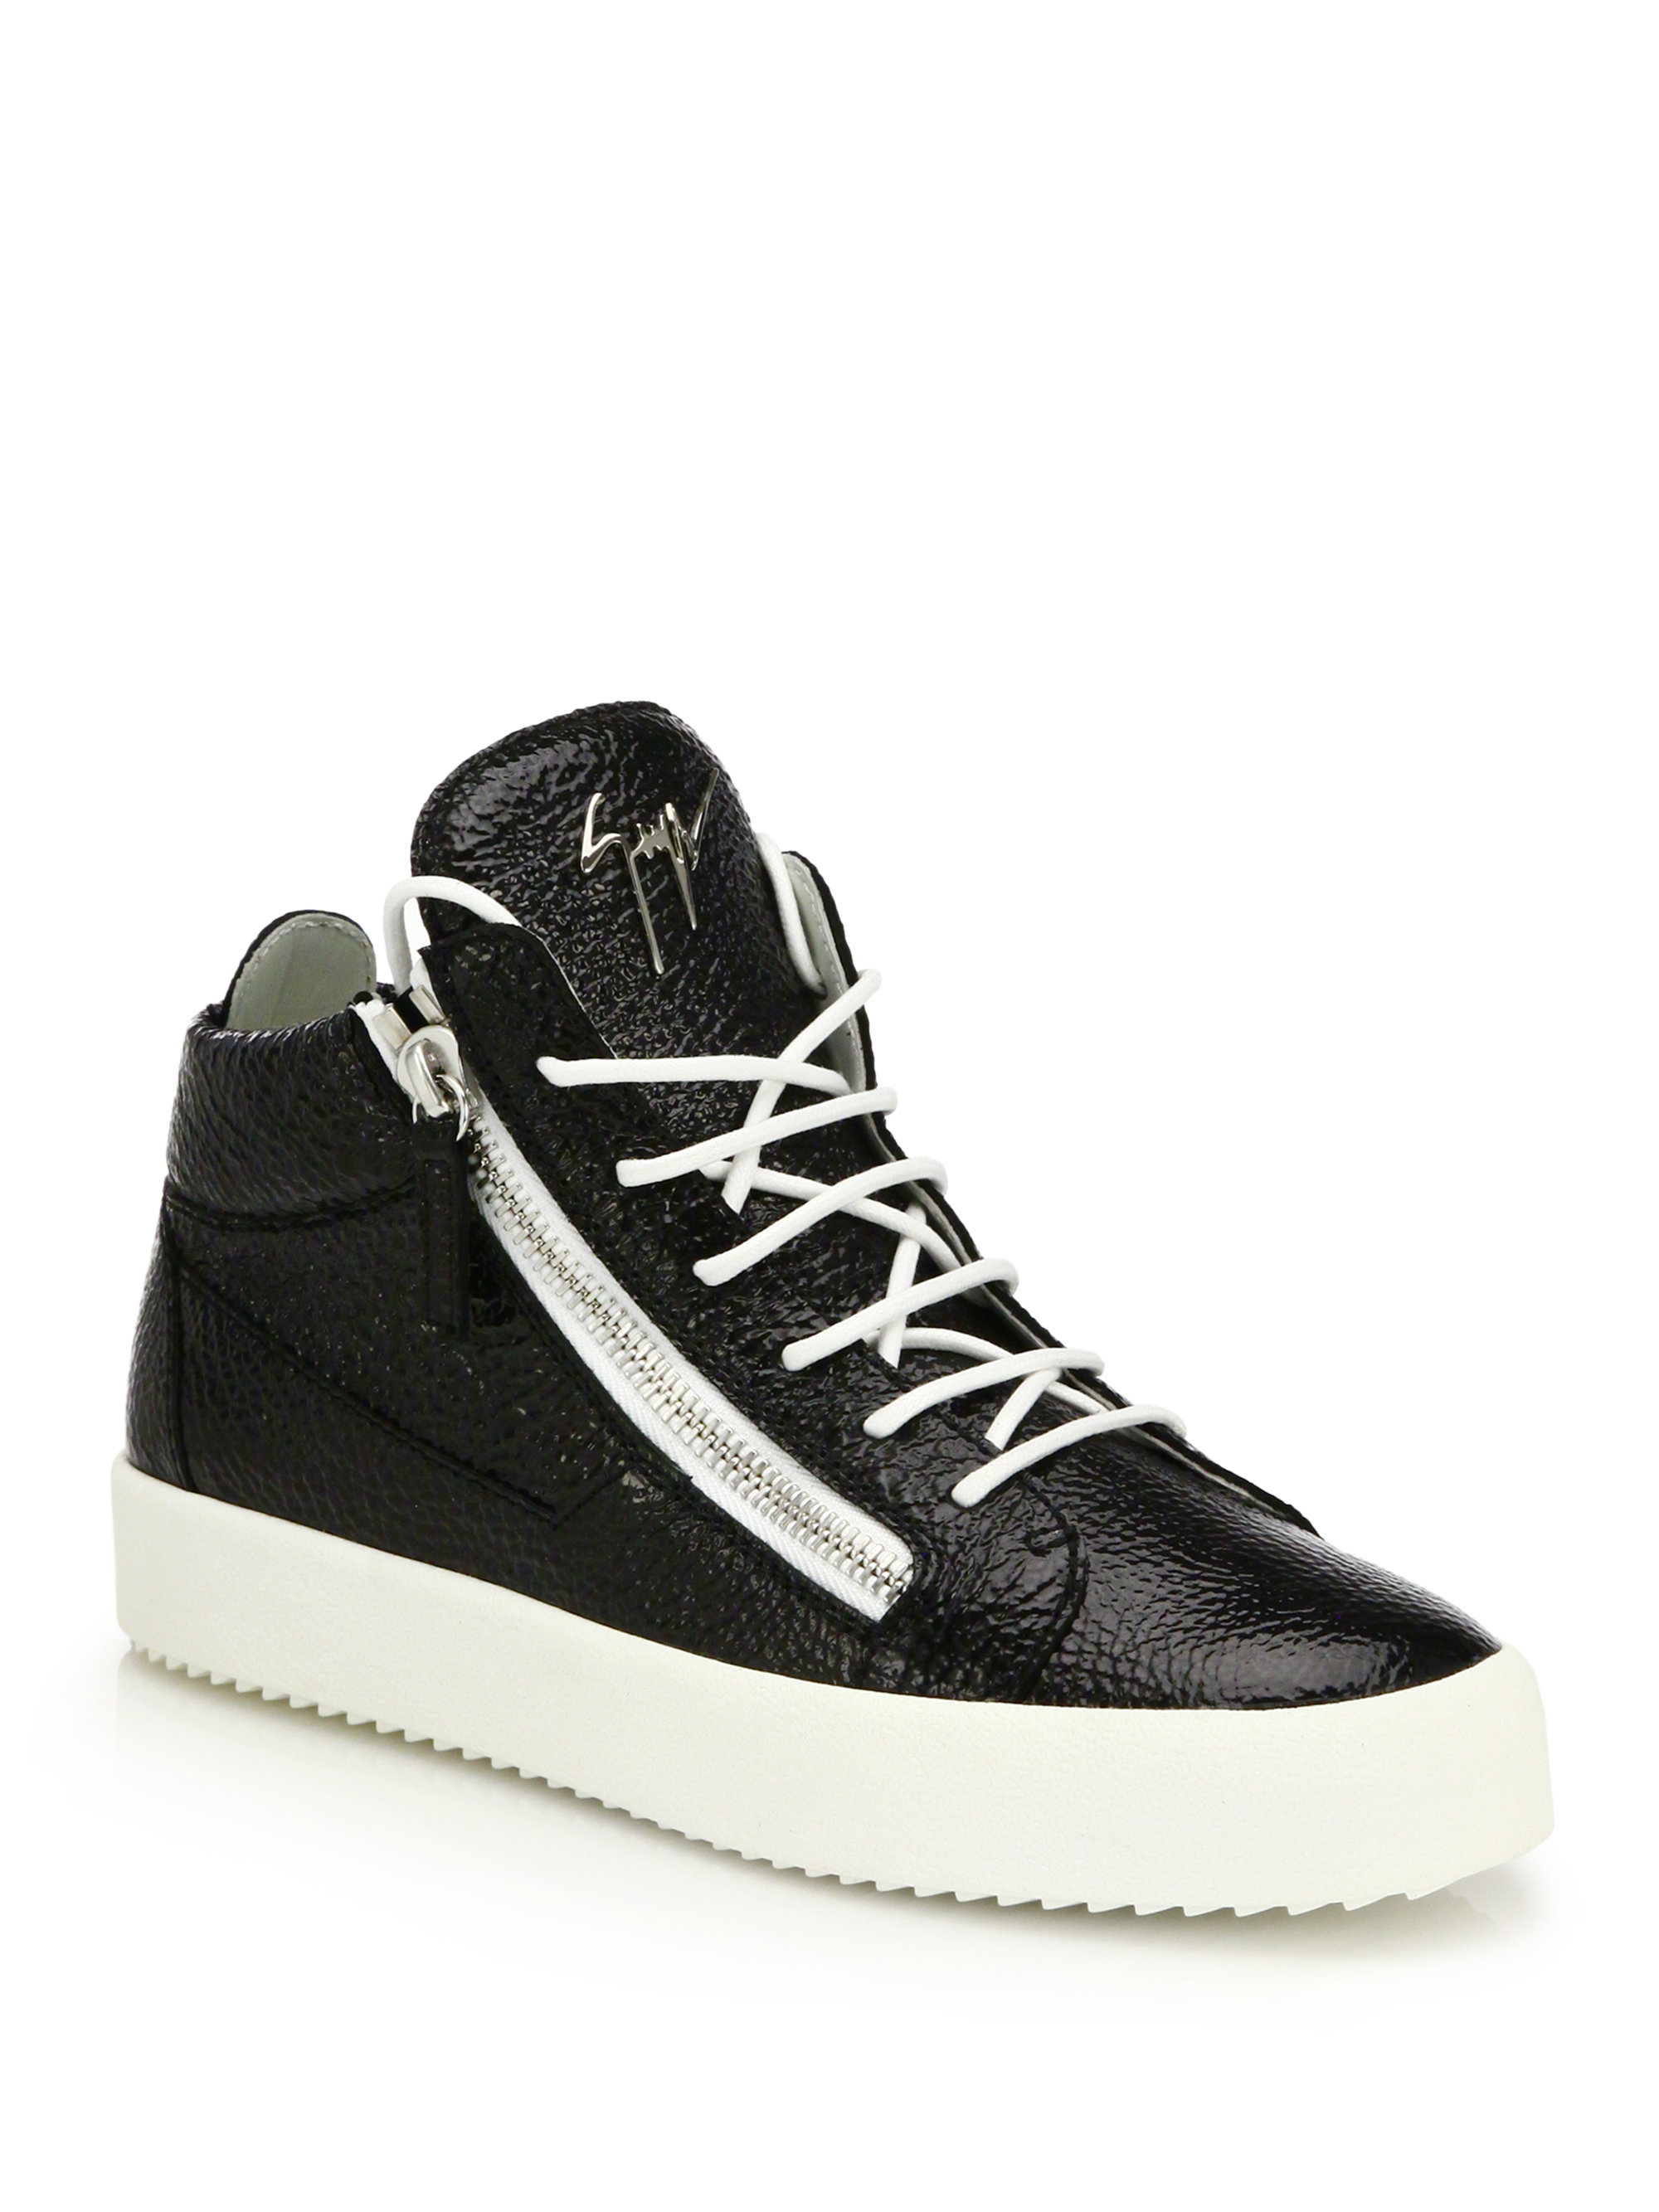 70f11041c11f5 Giuseppe Zanotti Crinkled Leather Double-zip Mid-top Sneakers in ...